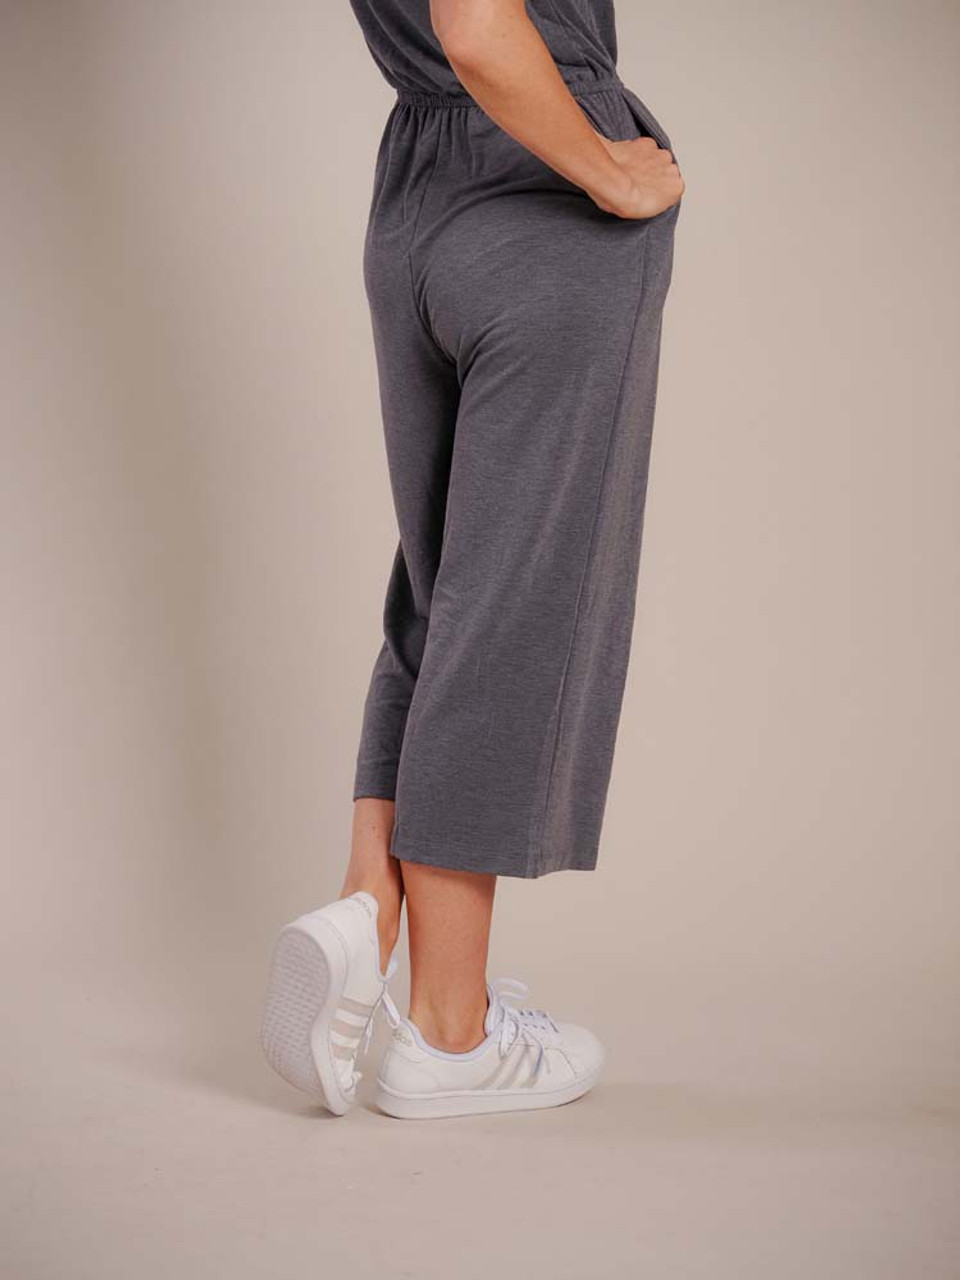 grey jumpsuit with elastic waist and side pockets Mudpie